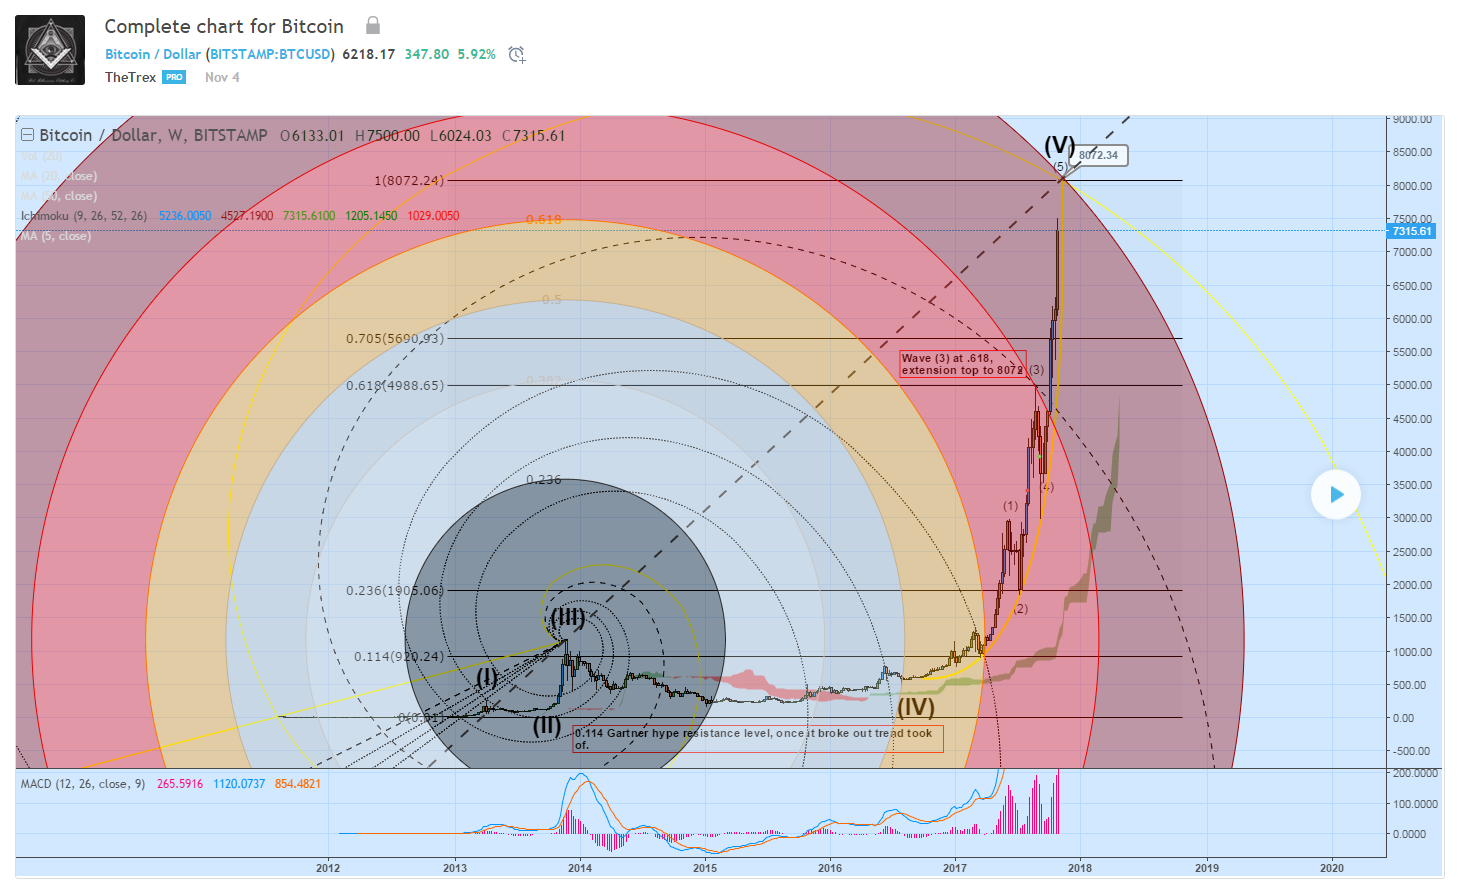 Complete chart for Bitcoin